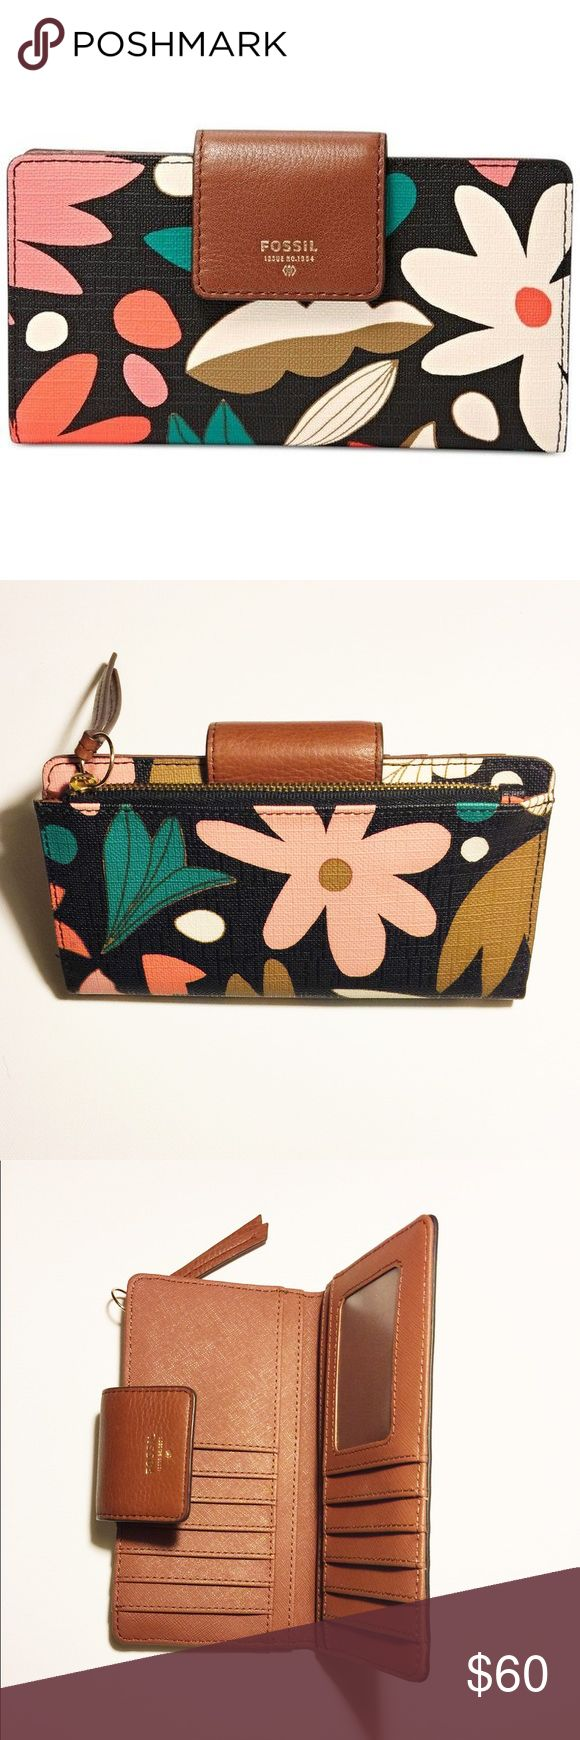 """NWOT Fossil Sydney Tab Wallet in Dark Floral Fossil Wallet, new without tags!   Zip pocket on back in gold with brown leather pull   Top flap snap double closure  Four large slot for bills, three slip pockets, twelve slots for cards, a clear ID holder and is fully-lined with brown PVC & brown fabric lining  Approximate measurements when closed: 6.8""""L x 3.75""""H x 1""""D  FOSSIL leather logo on leather tab on front Fossil Bags Wallets"""